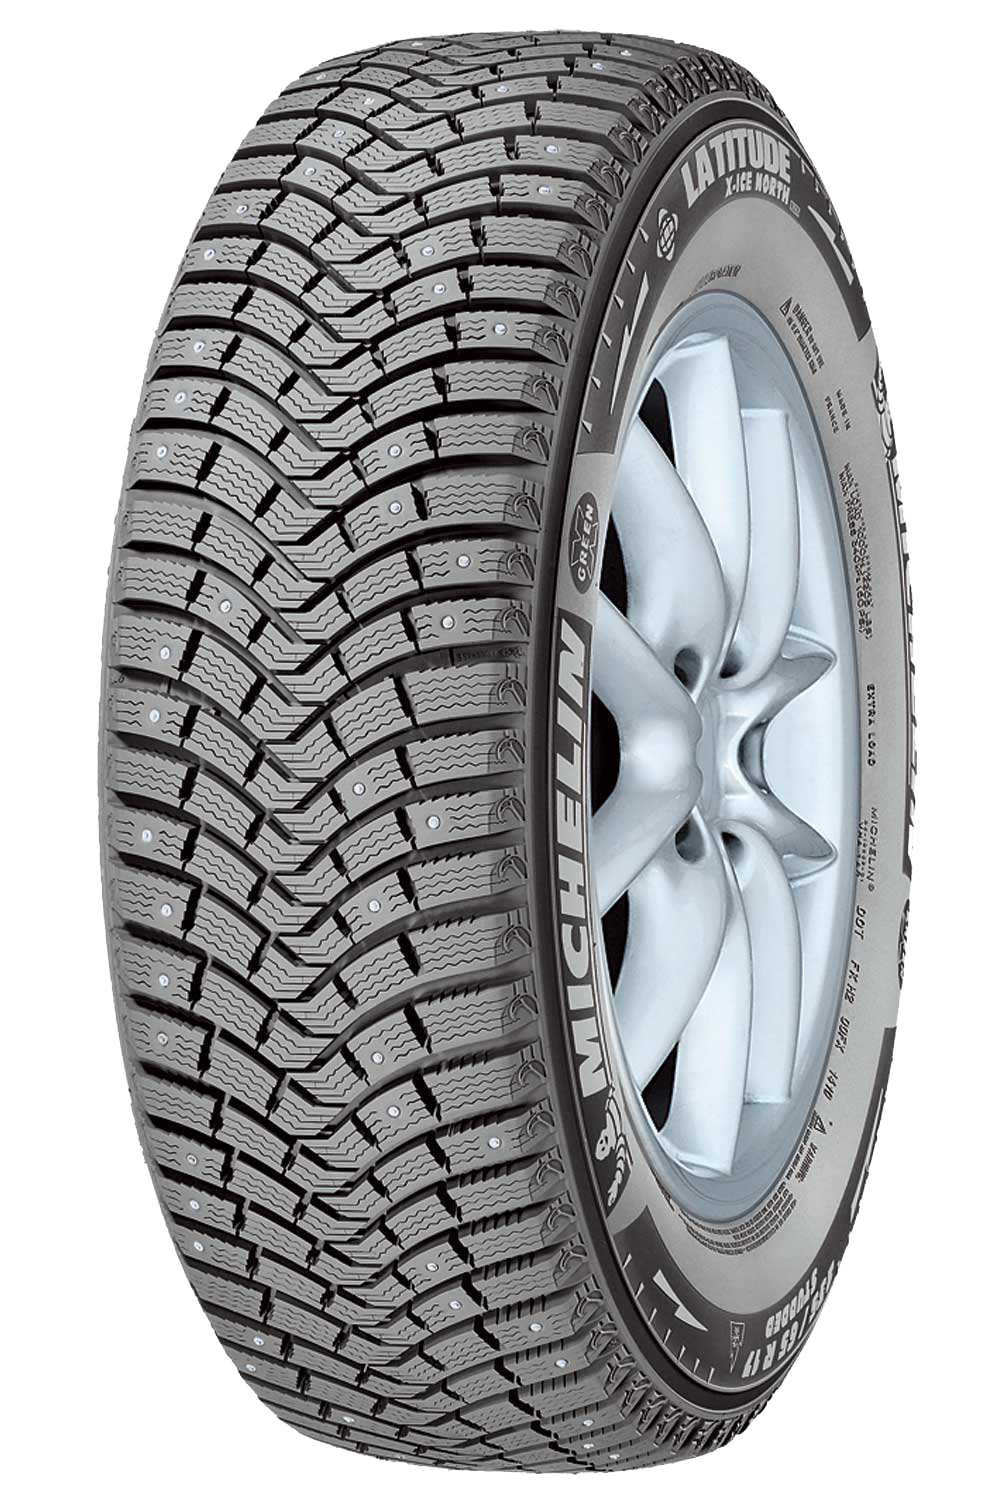 Зимняя шипованная шина Michelin Latitude X-Ice North XIN2 plus 275/45 R21 110T XL